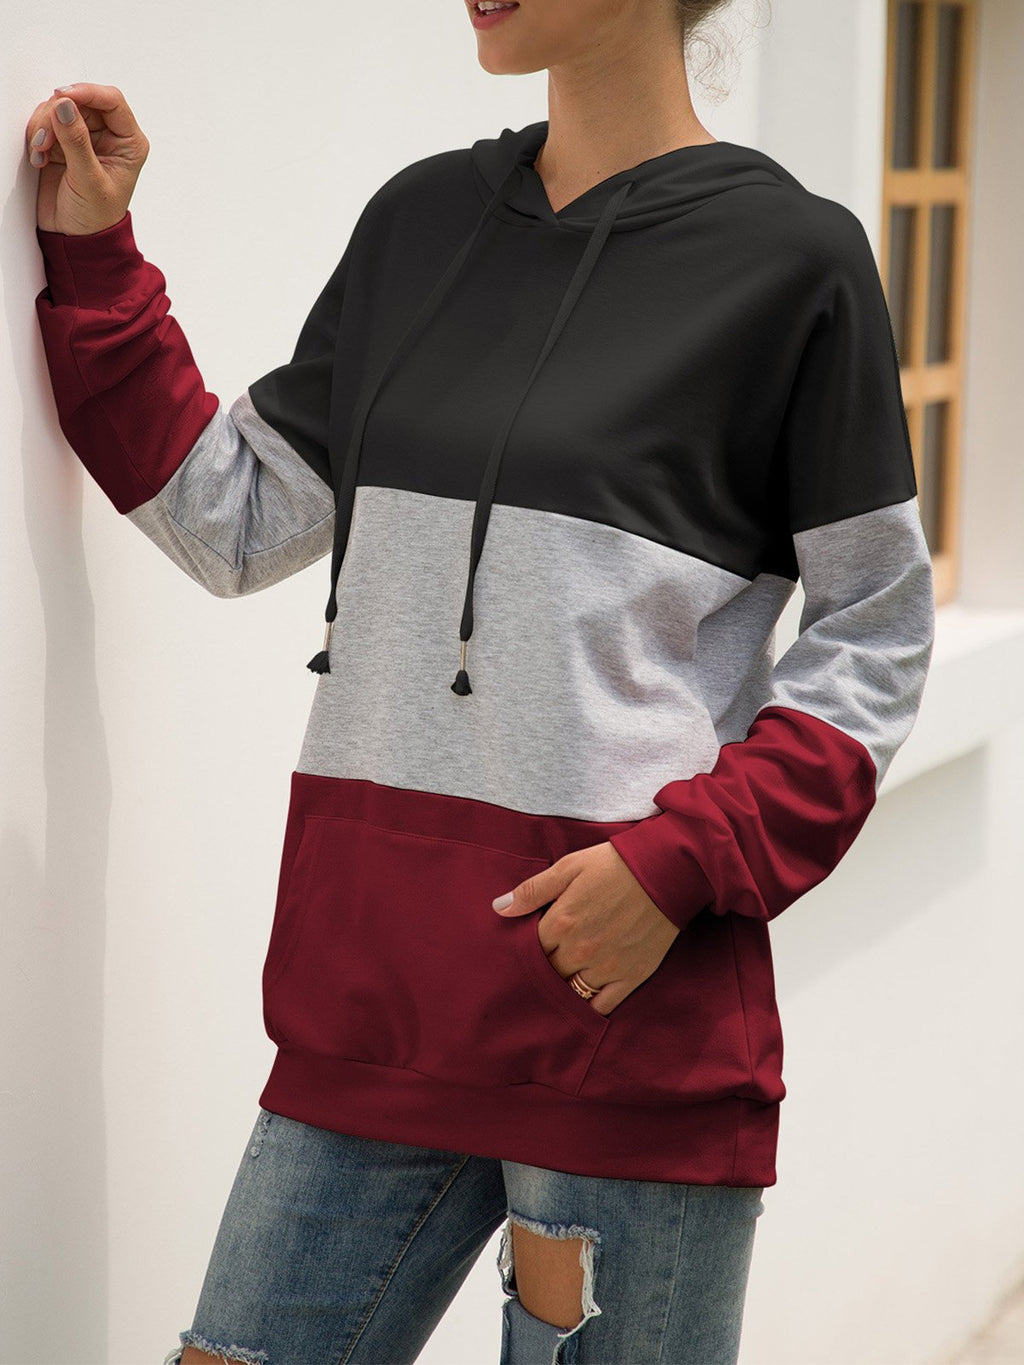 Three Color Splice Long-Sleeved Hoodies Sweatshirt